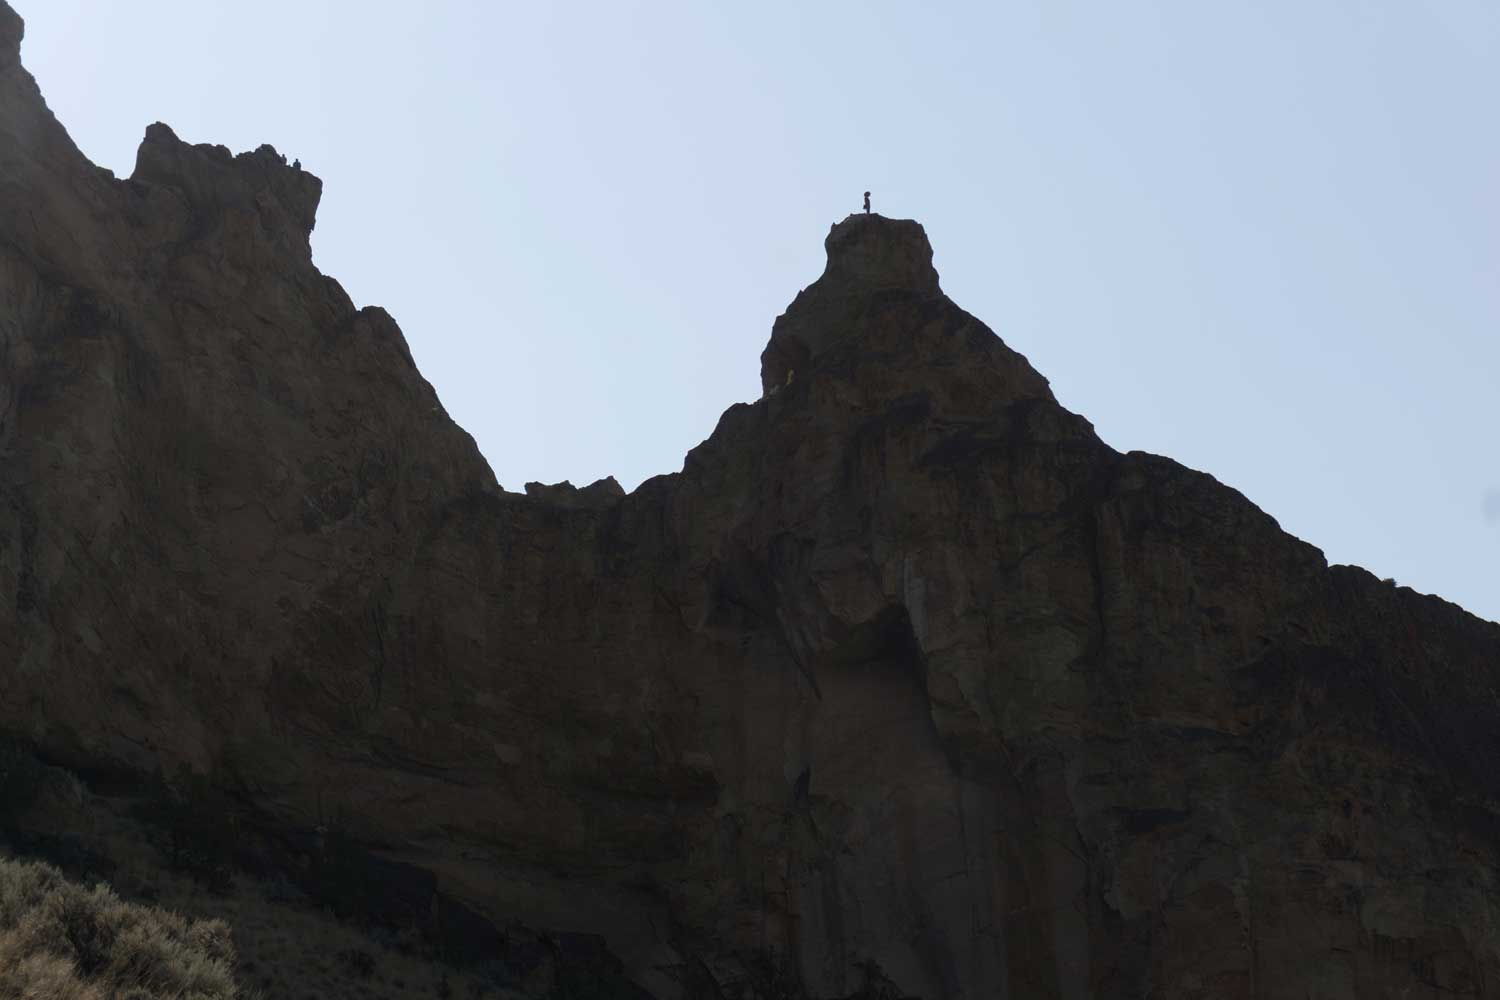 Brogan Spire viewer of the Total Solar Eclipse at Smith Rock 25 minutes before totality